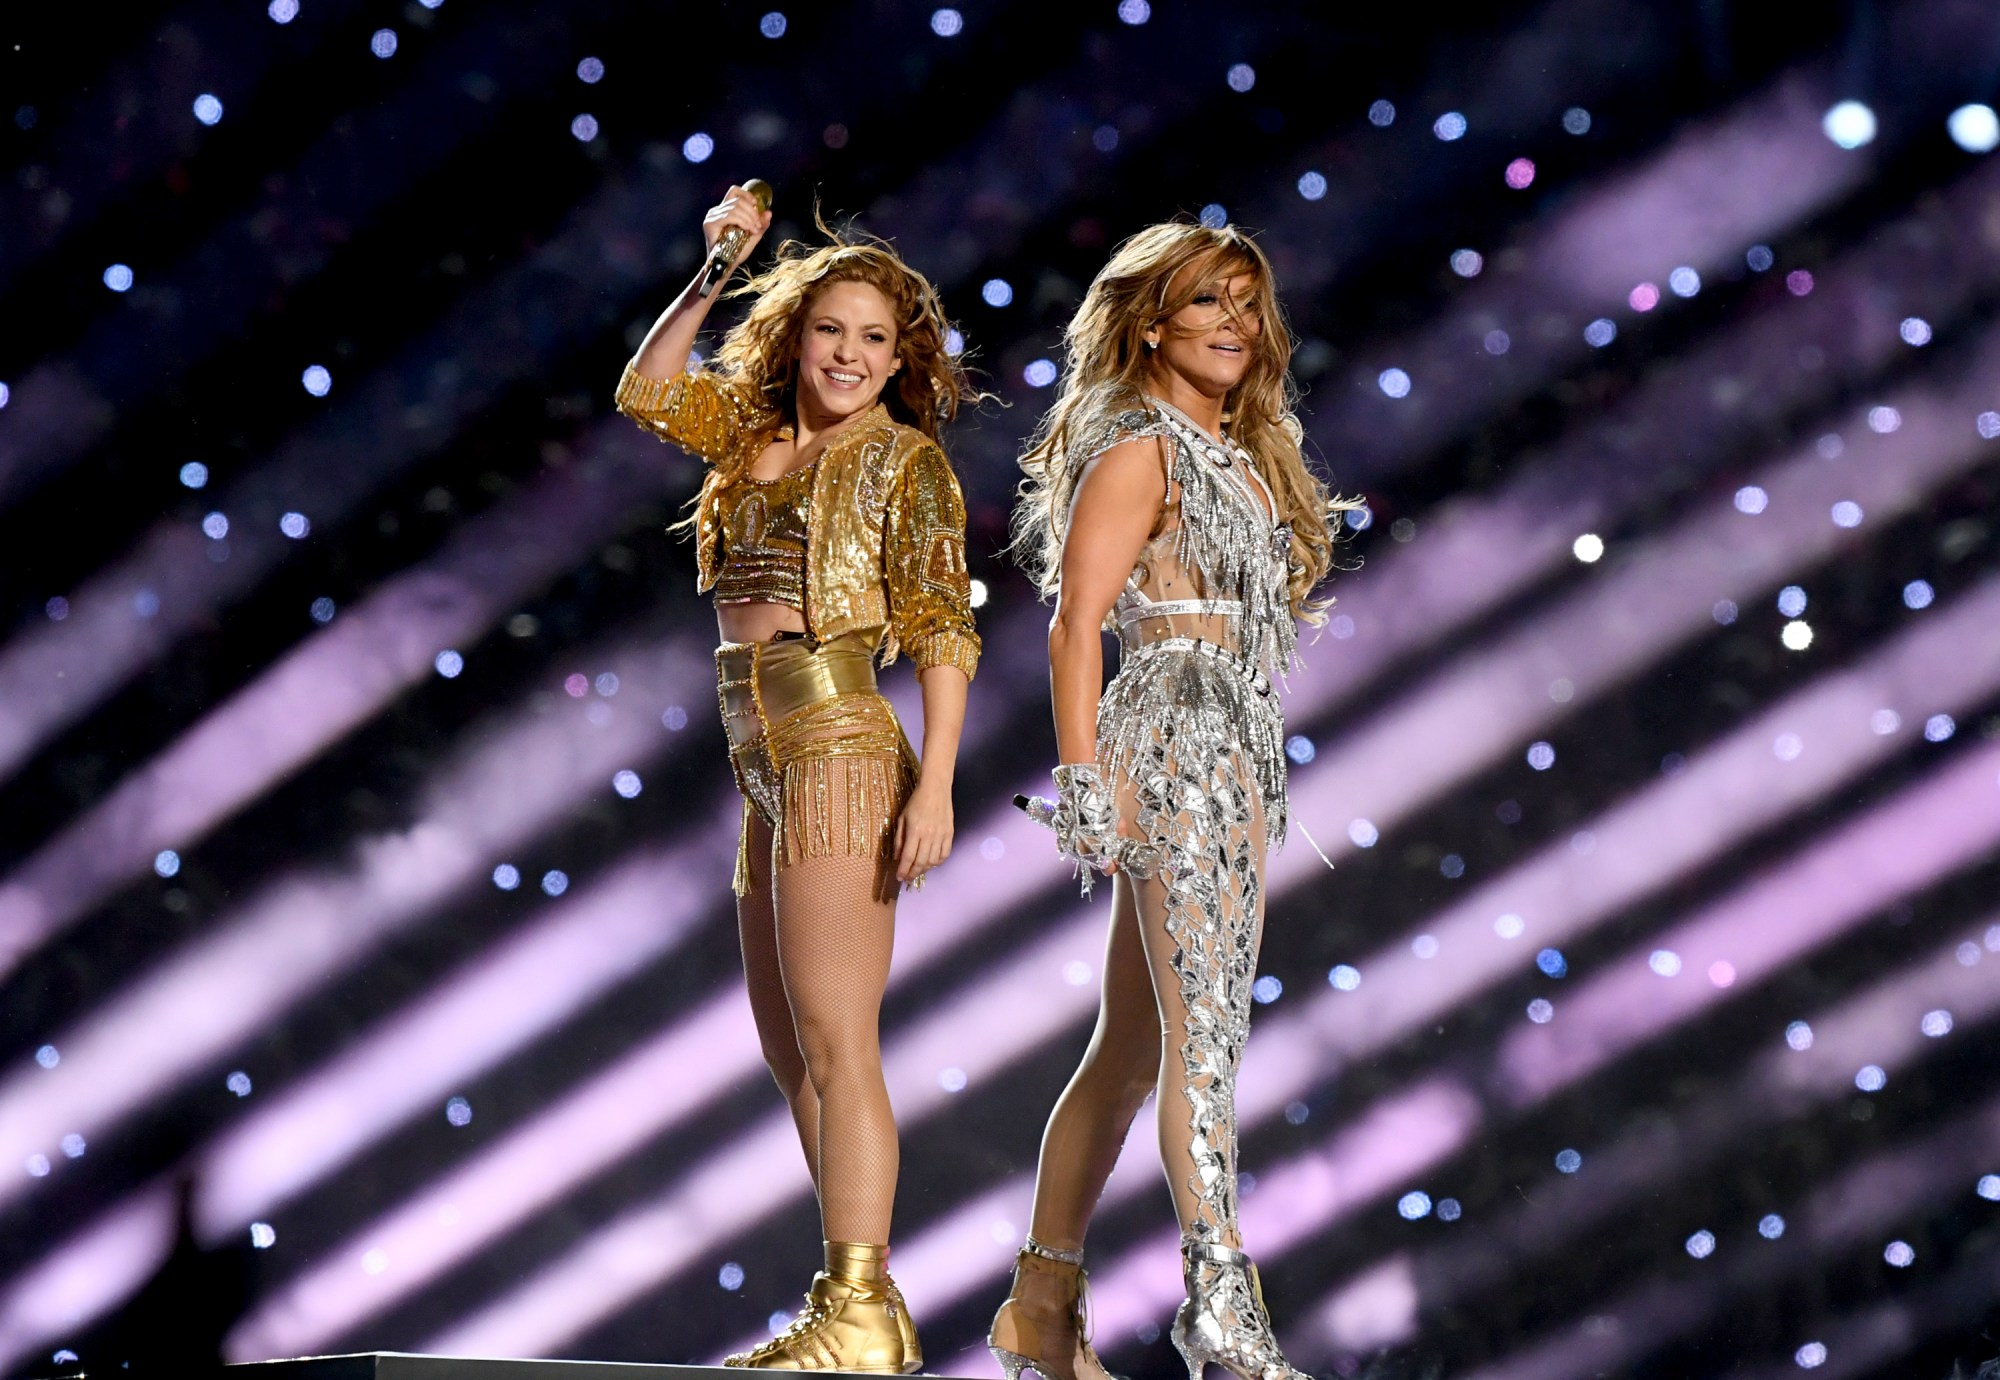 Shakira (Left) and Jennifer Lopez perform onstage during the Pepsi Super Bowl LIV Halftime Show at Hard Rock Stadium on February 02, 2020 in Miami, Florida. (Kevin Winter/Getty Images)